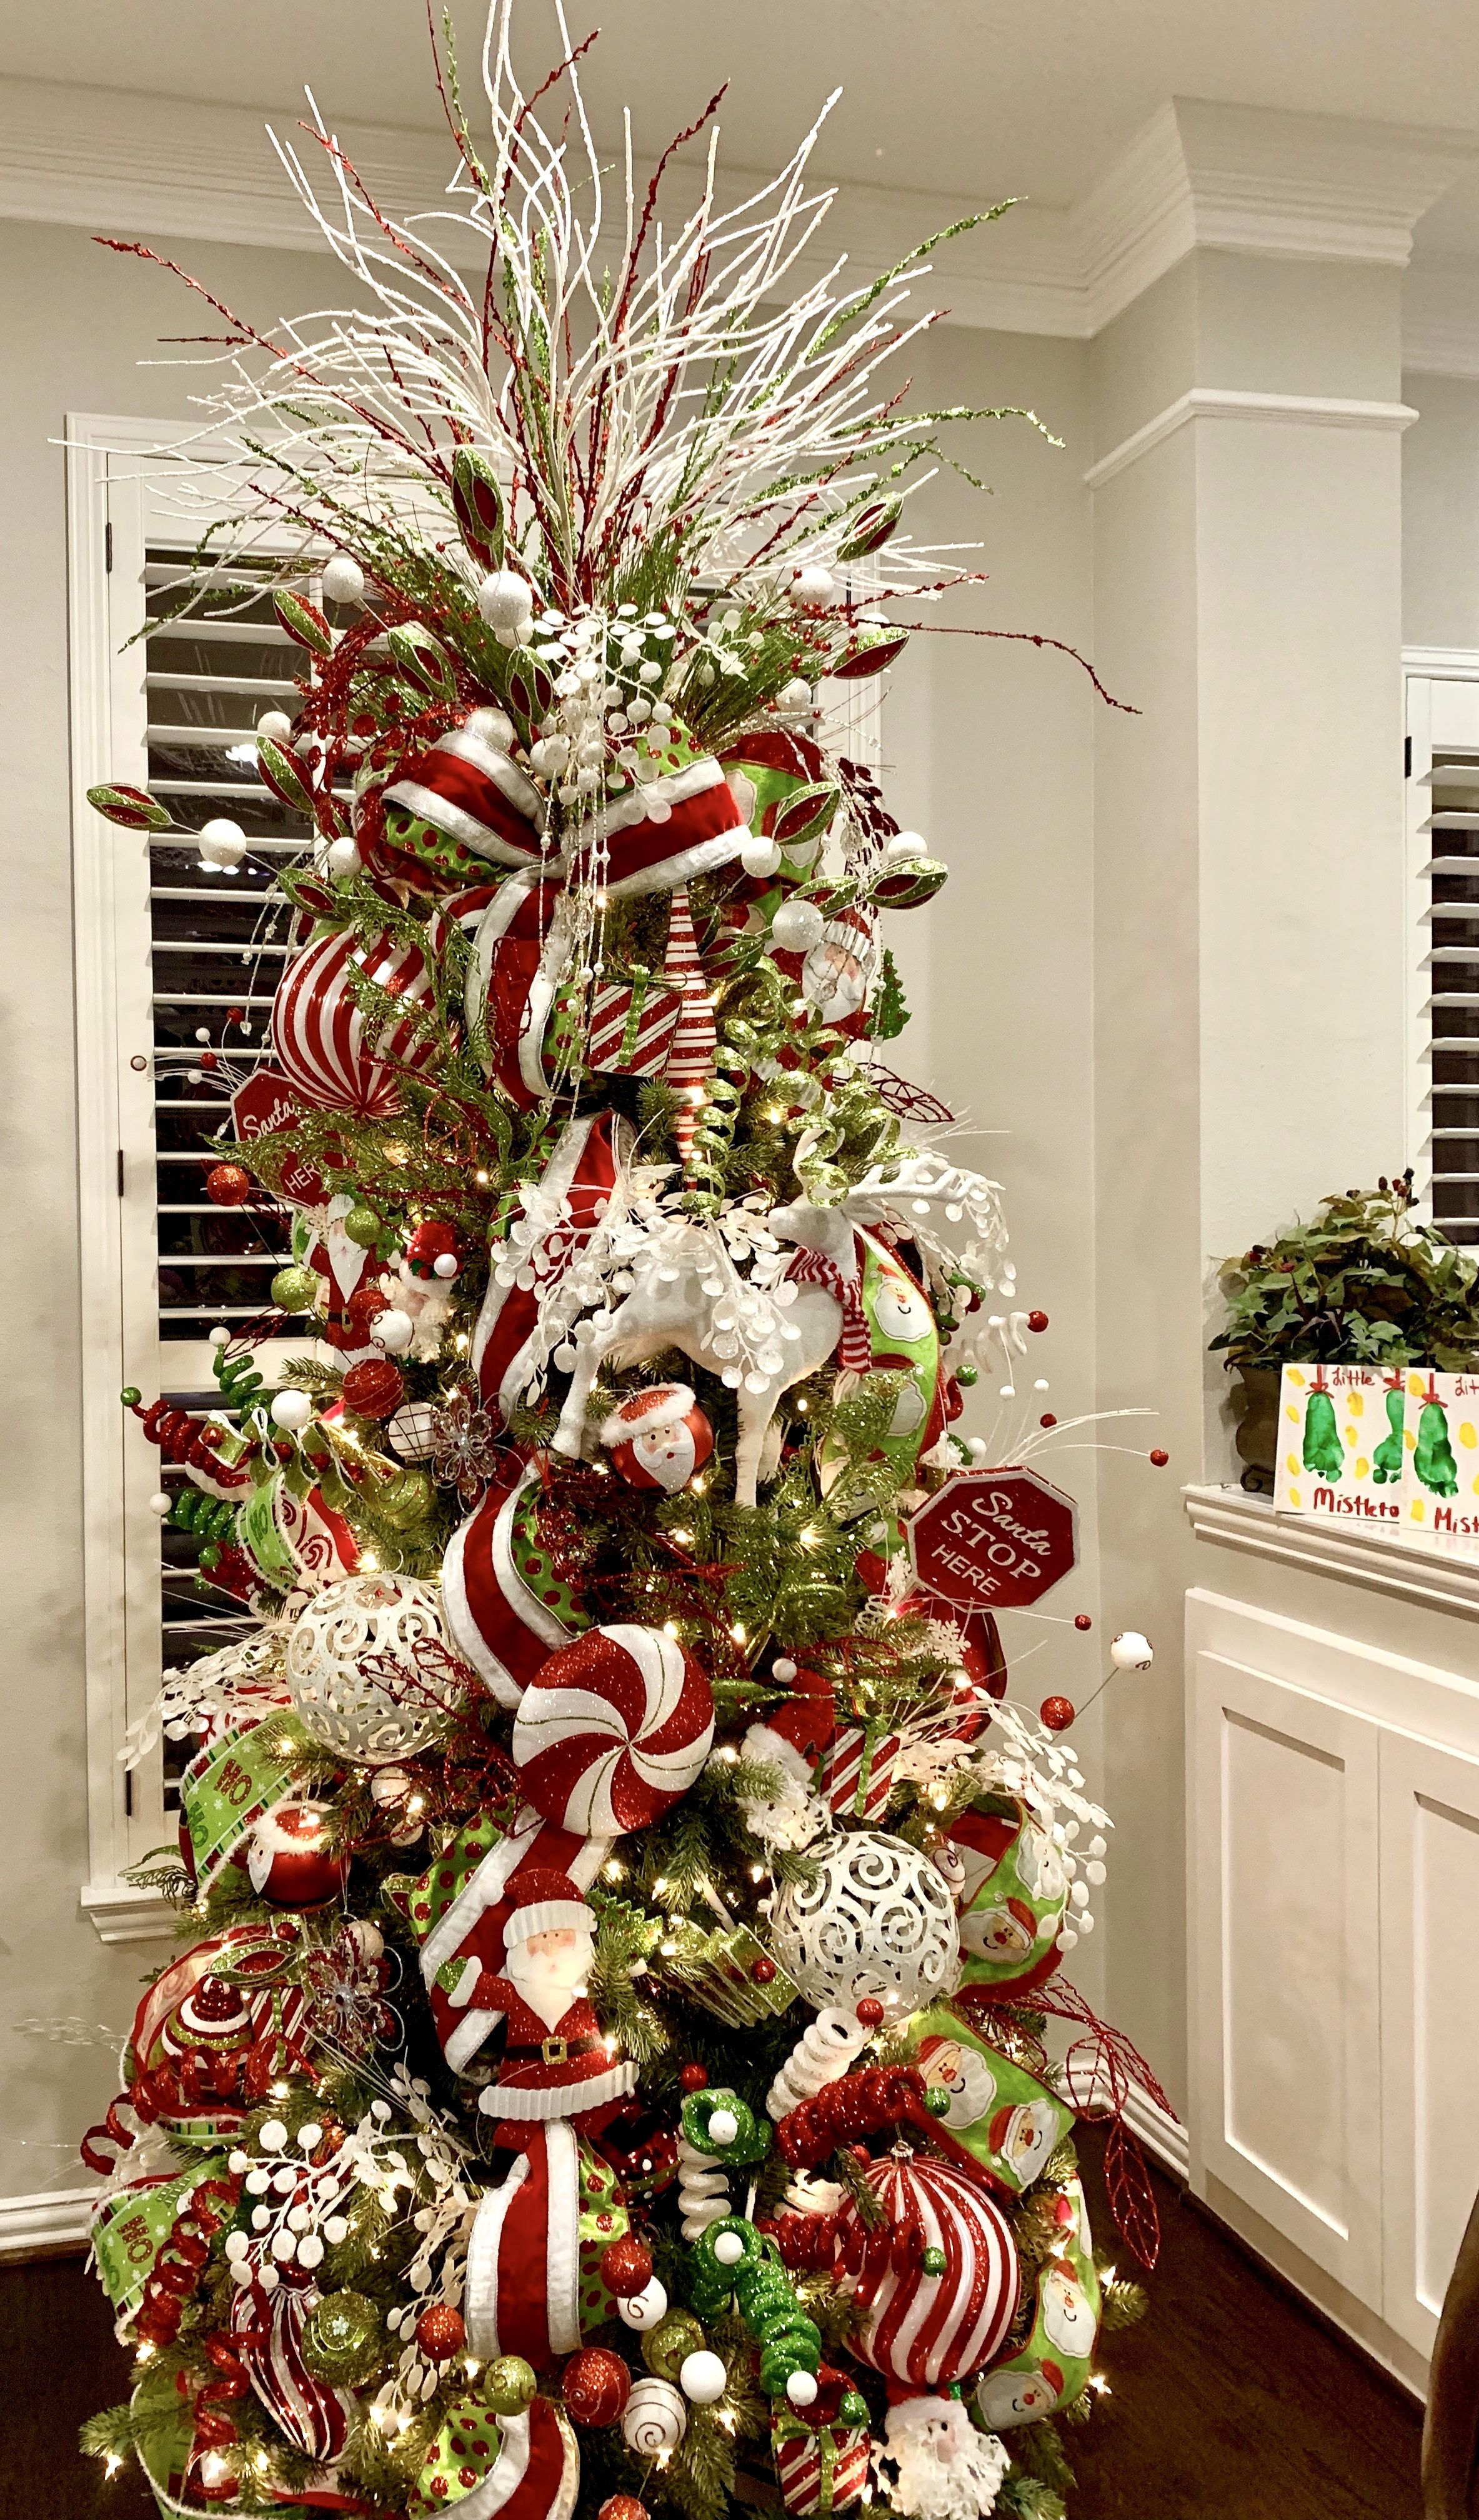 Candy cane Christmas tree designed by Andrea Oaks